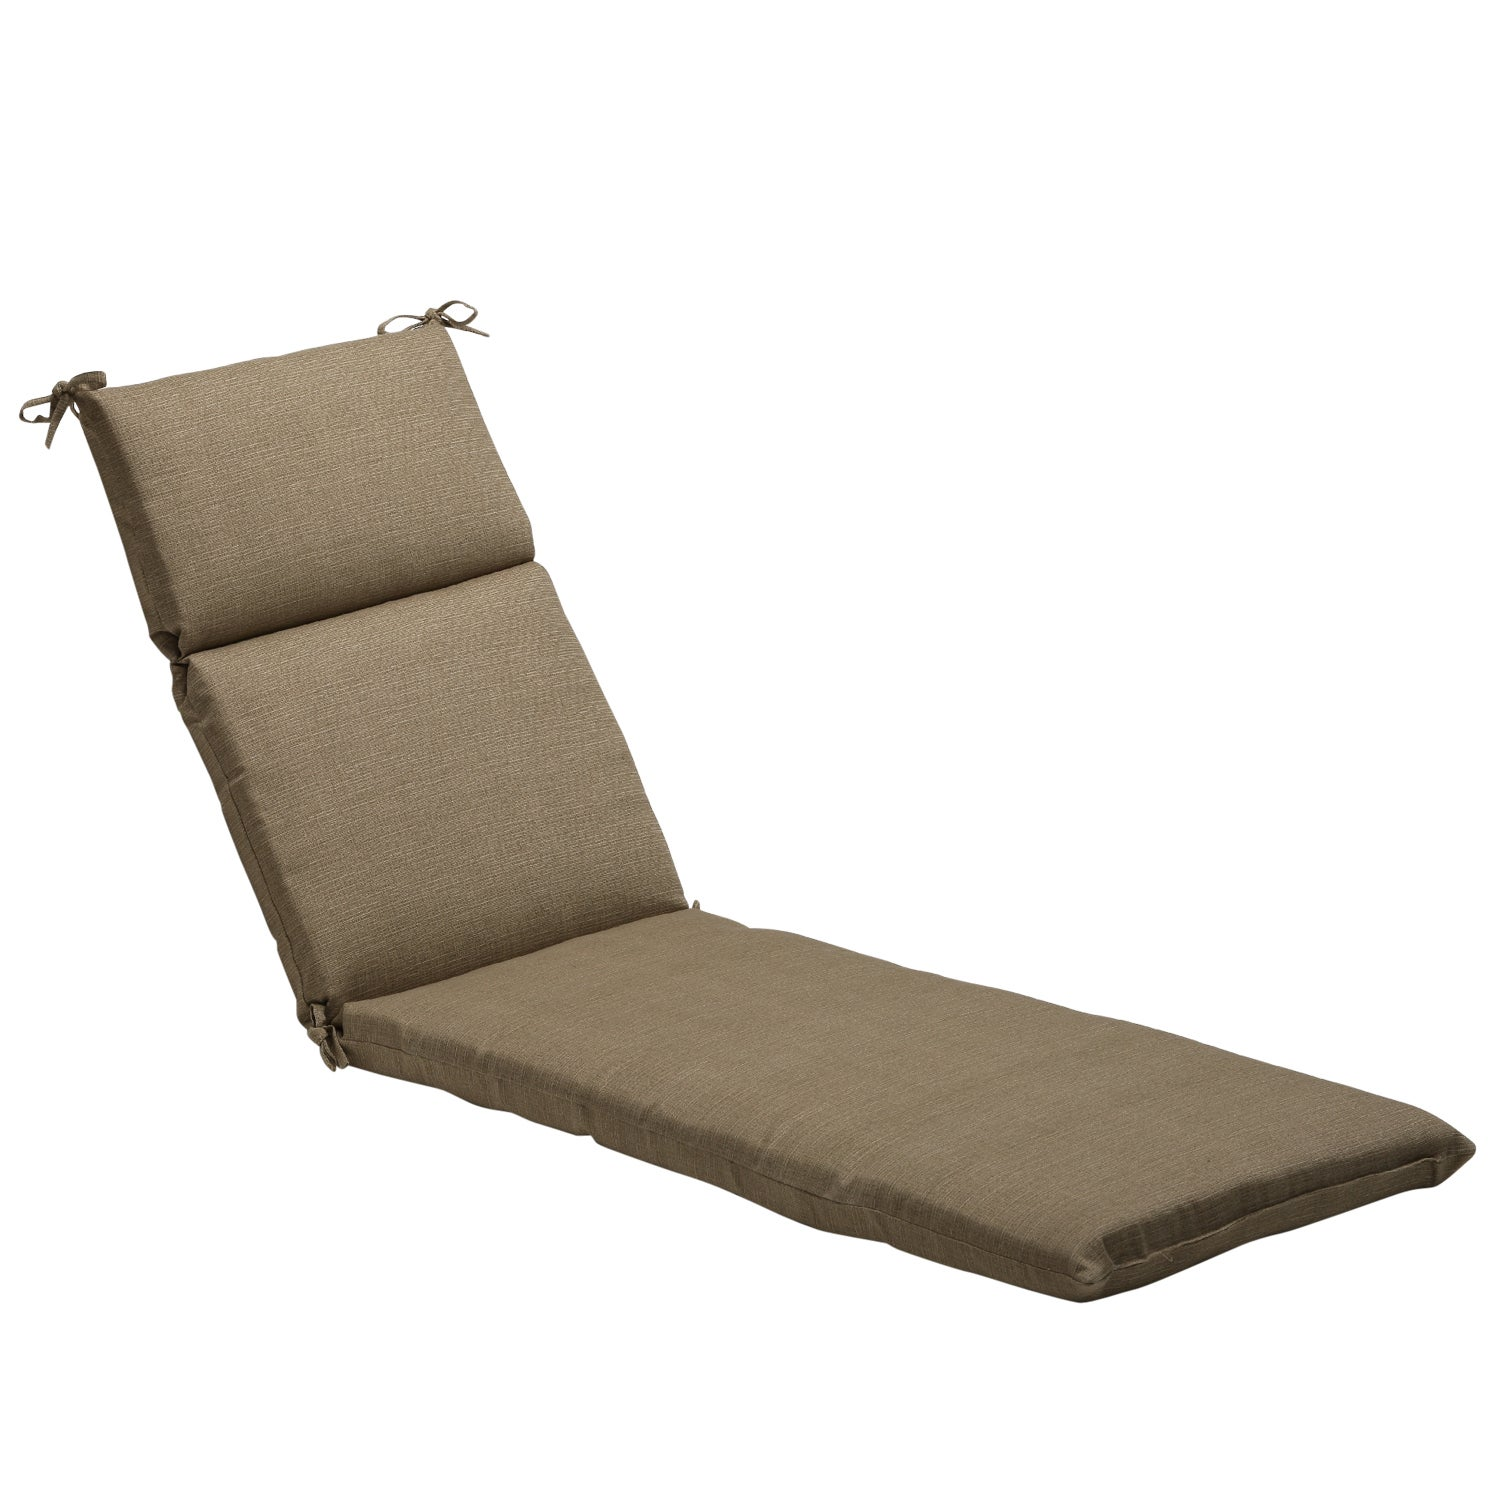 Solid Taupe Textured Outdoor Chaise Lounge Cushion